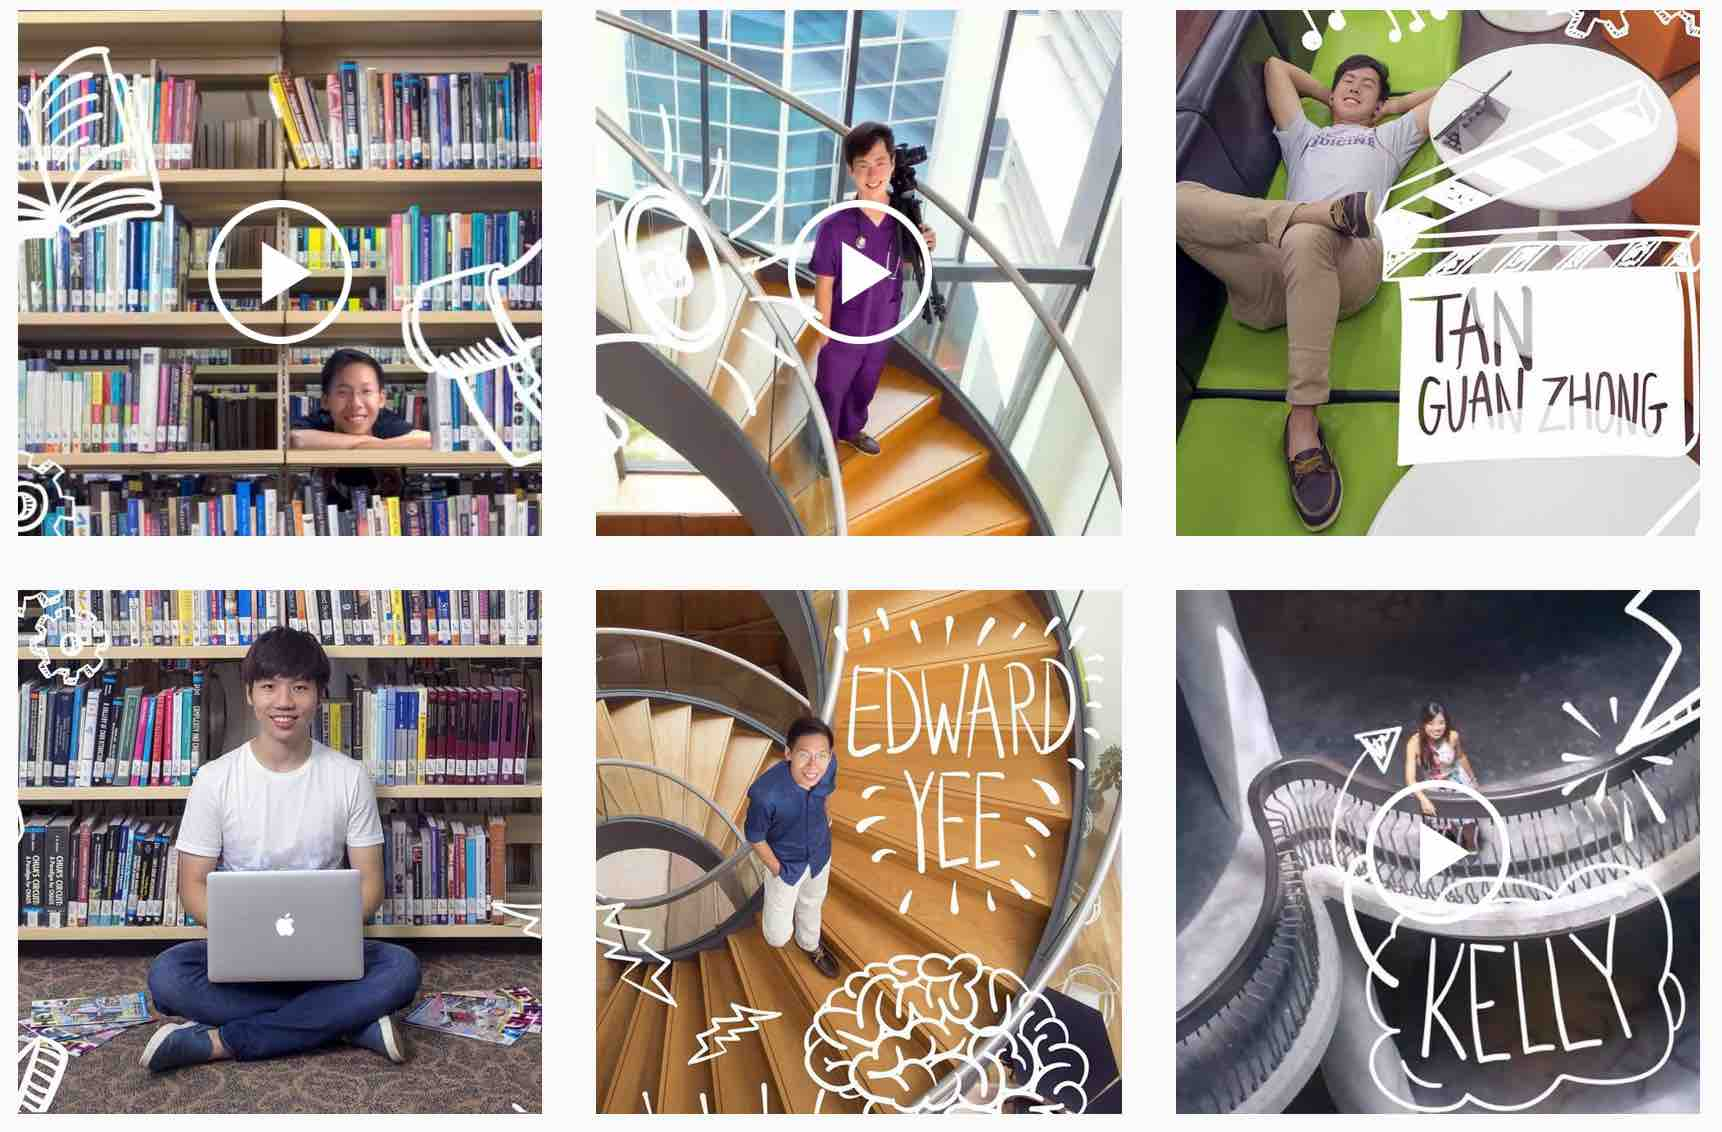 Student Success Stories At NTU Singapore - AspirantSG